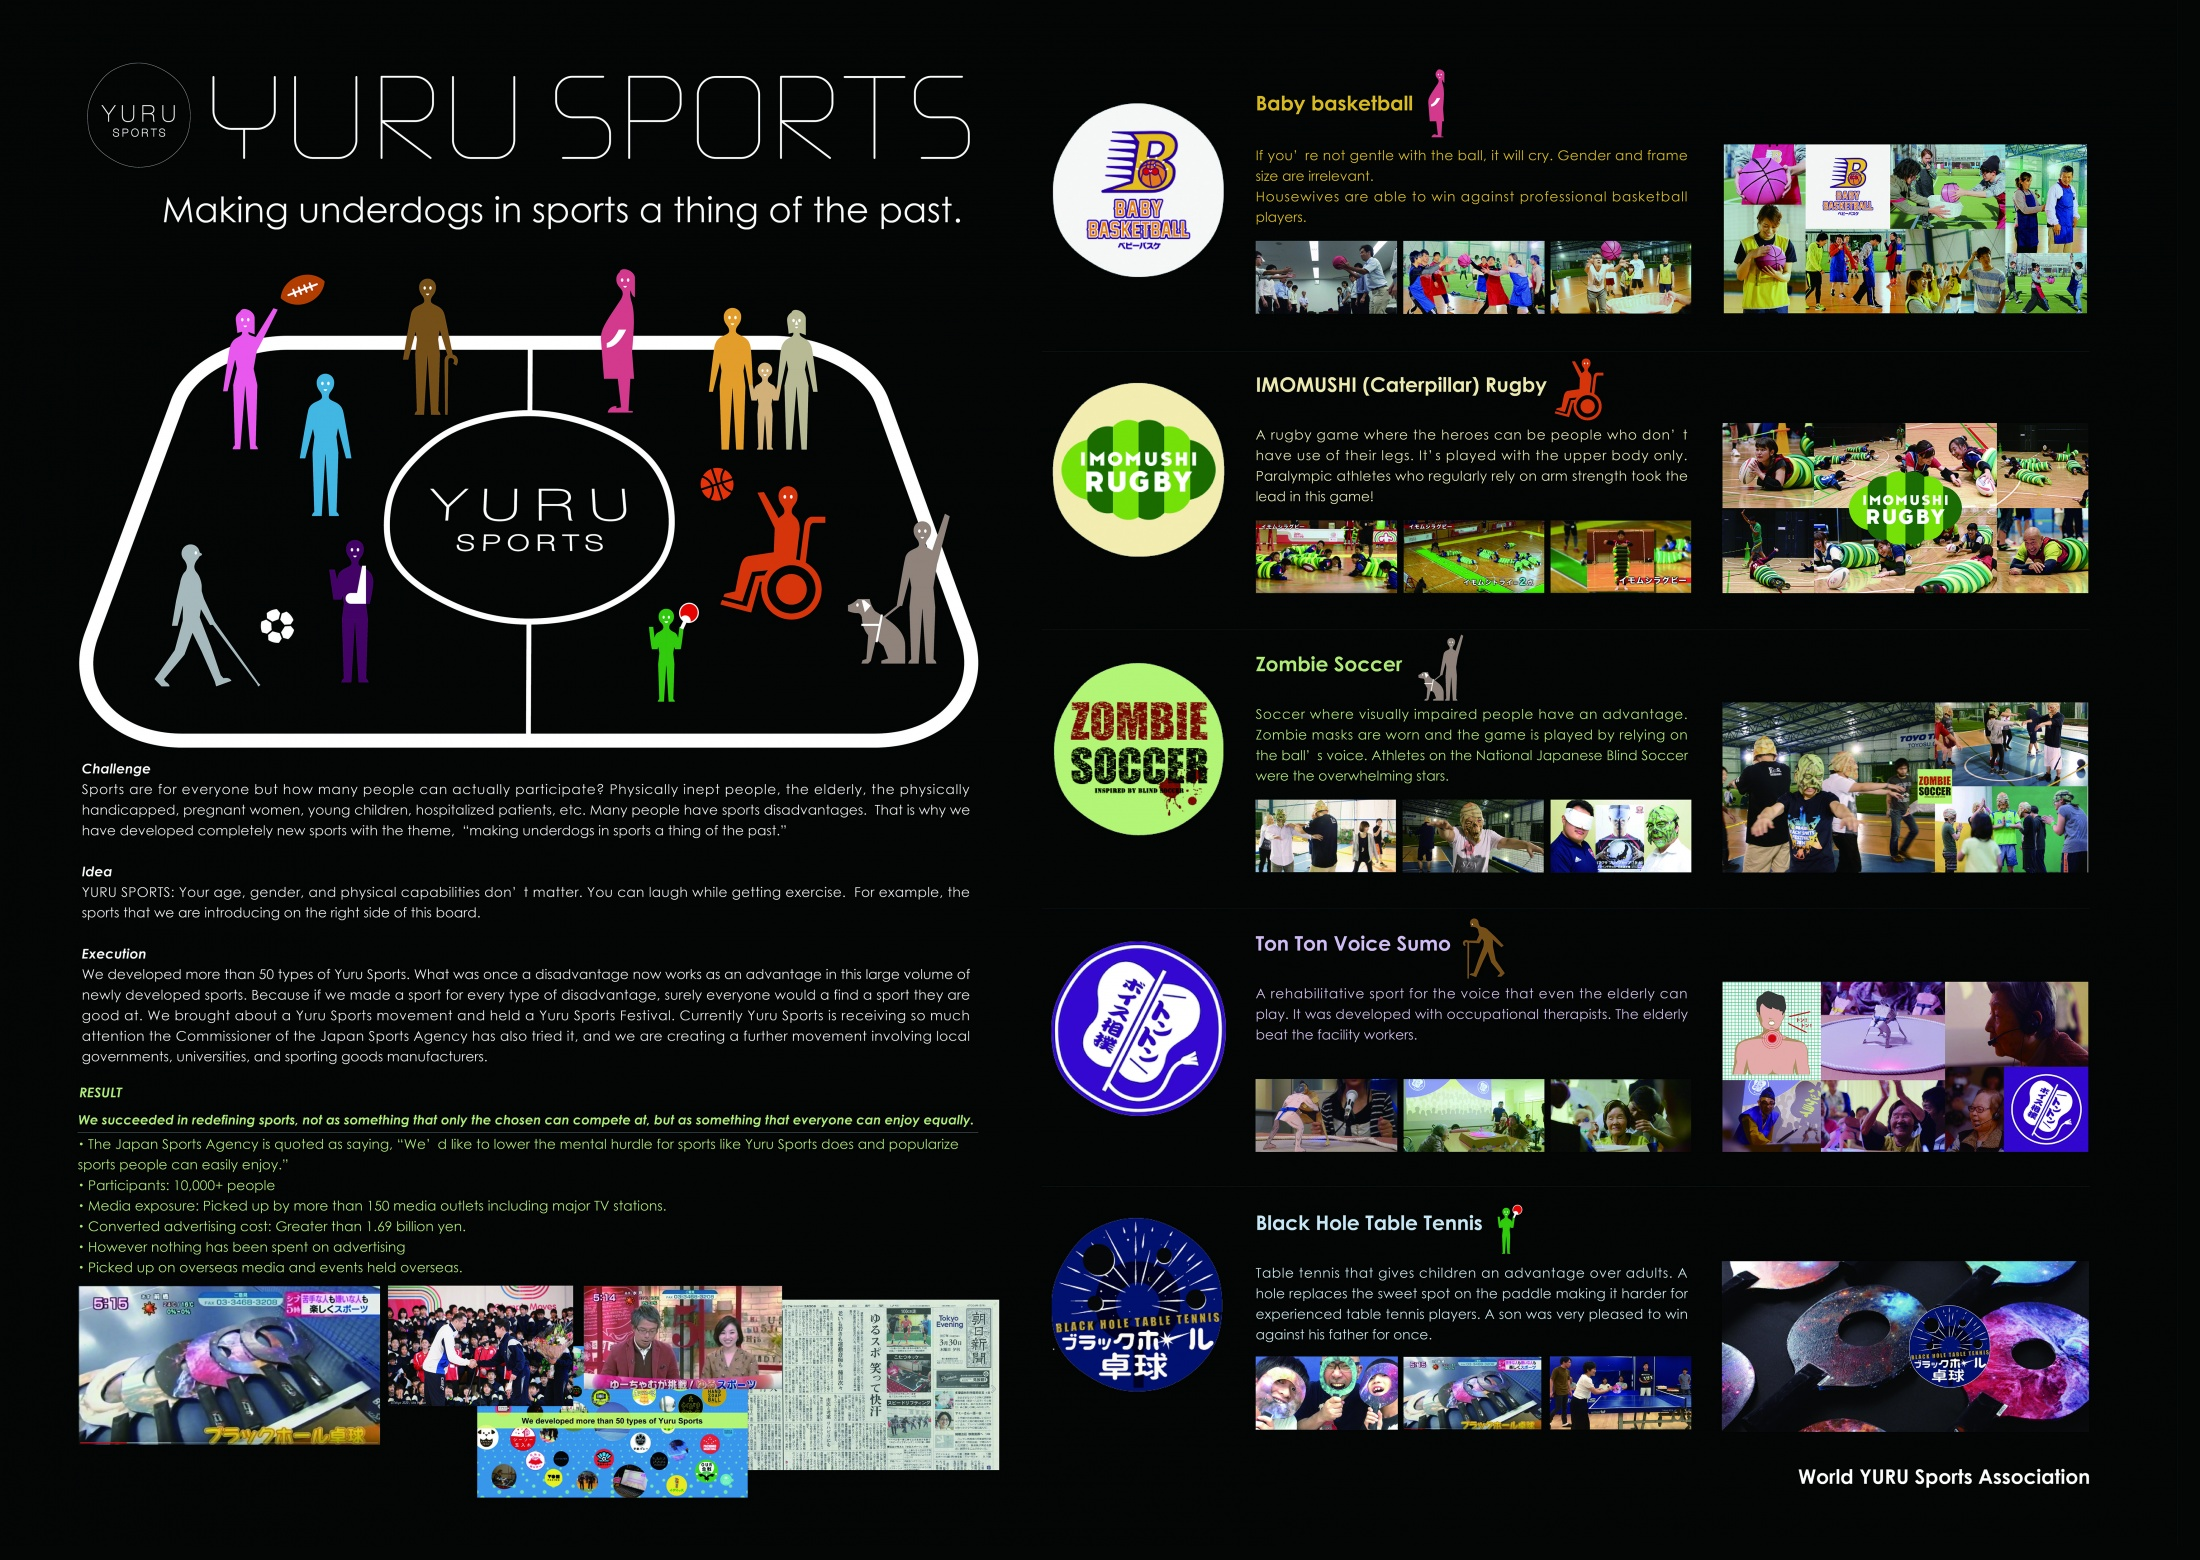 Thumbnail for YURU SPORTS ~SPORTS FOR ALL, TRULY FOR ALL~